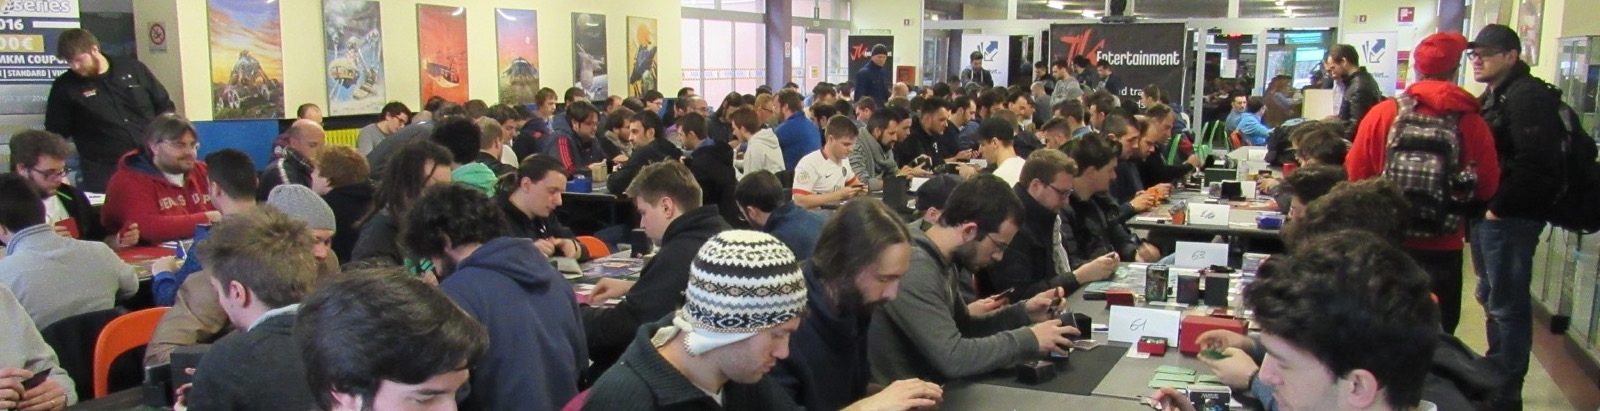 The venue was packed on Day 2 of MKM Series Milan!